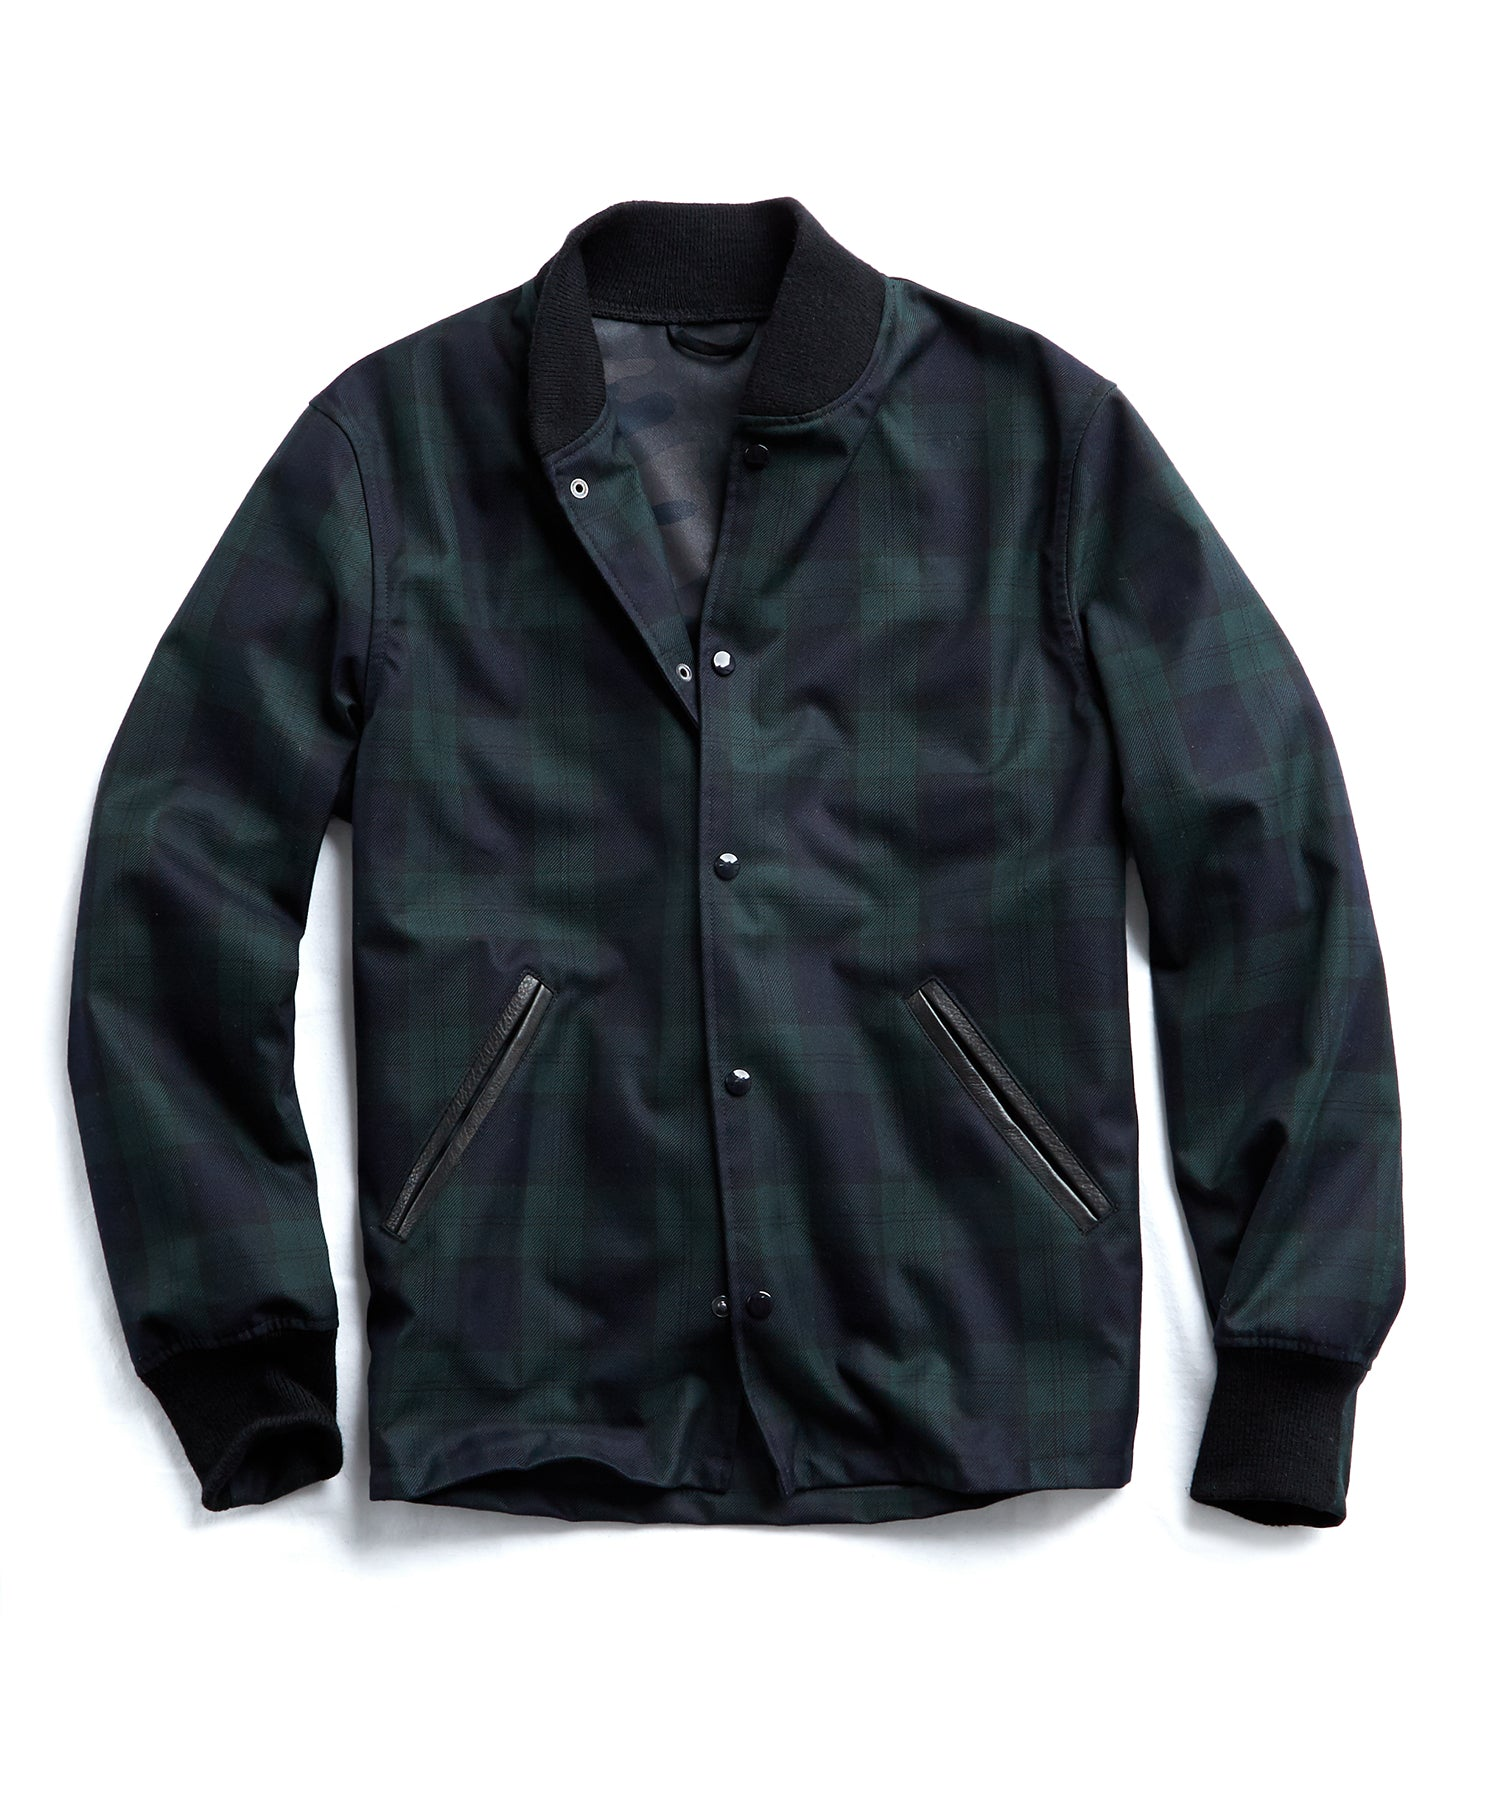 Golden Bear + Todd Snyder Exclusive Blackwatch Coaches Jacket